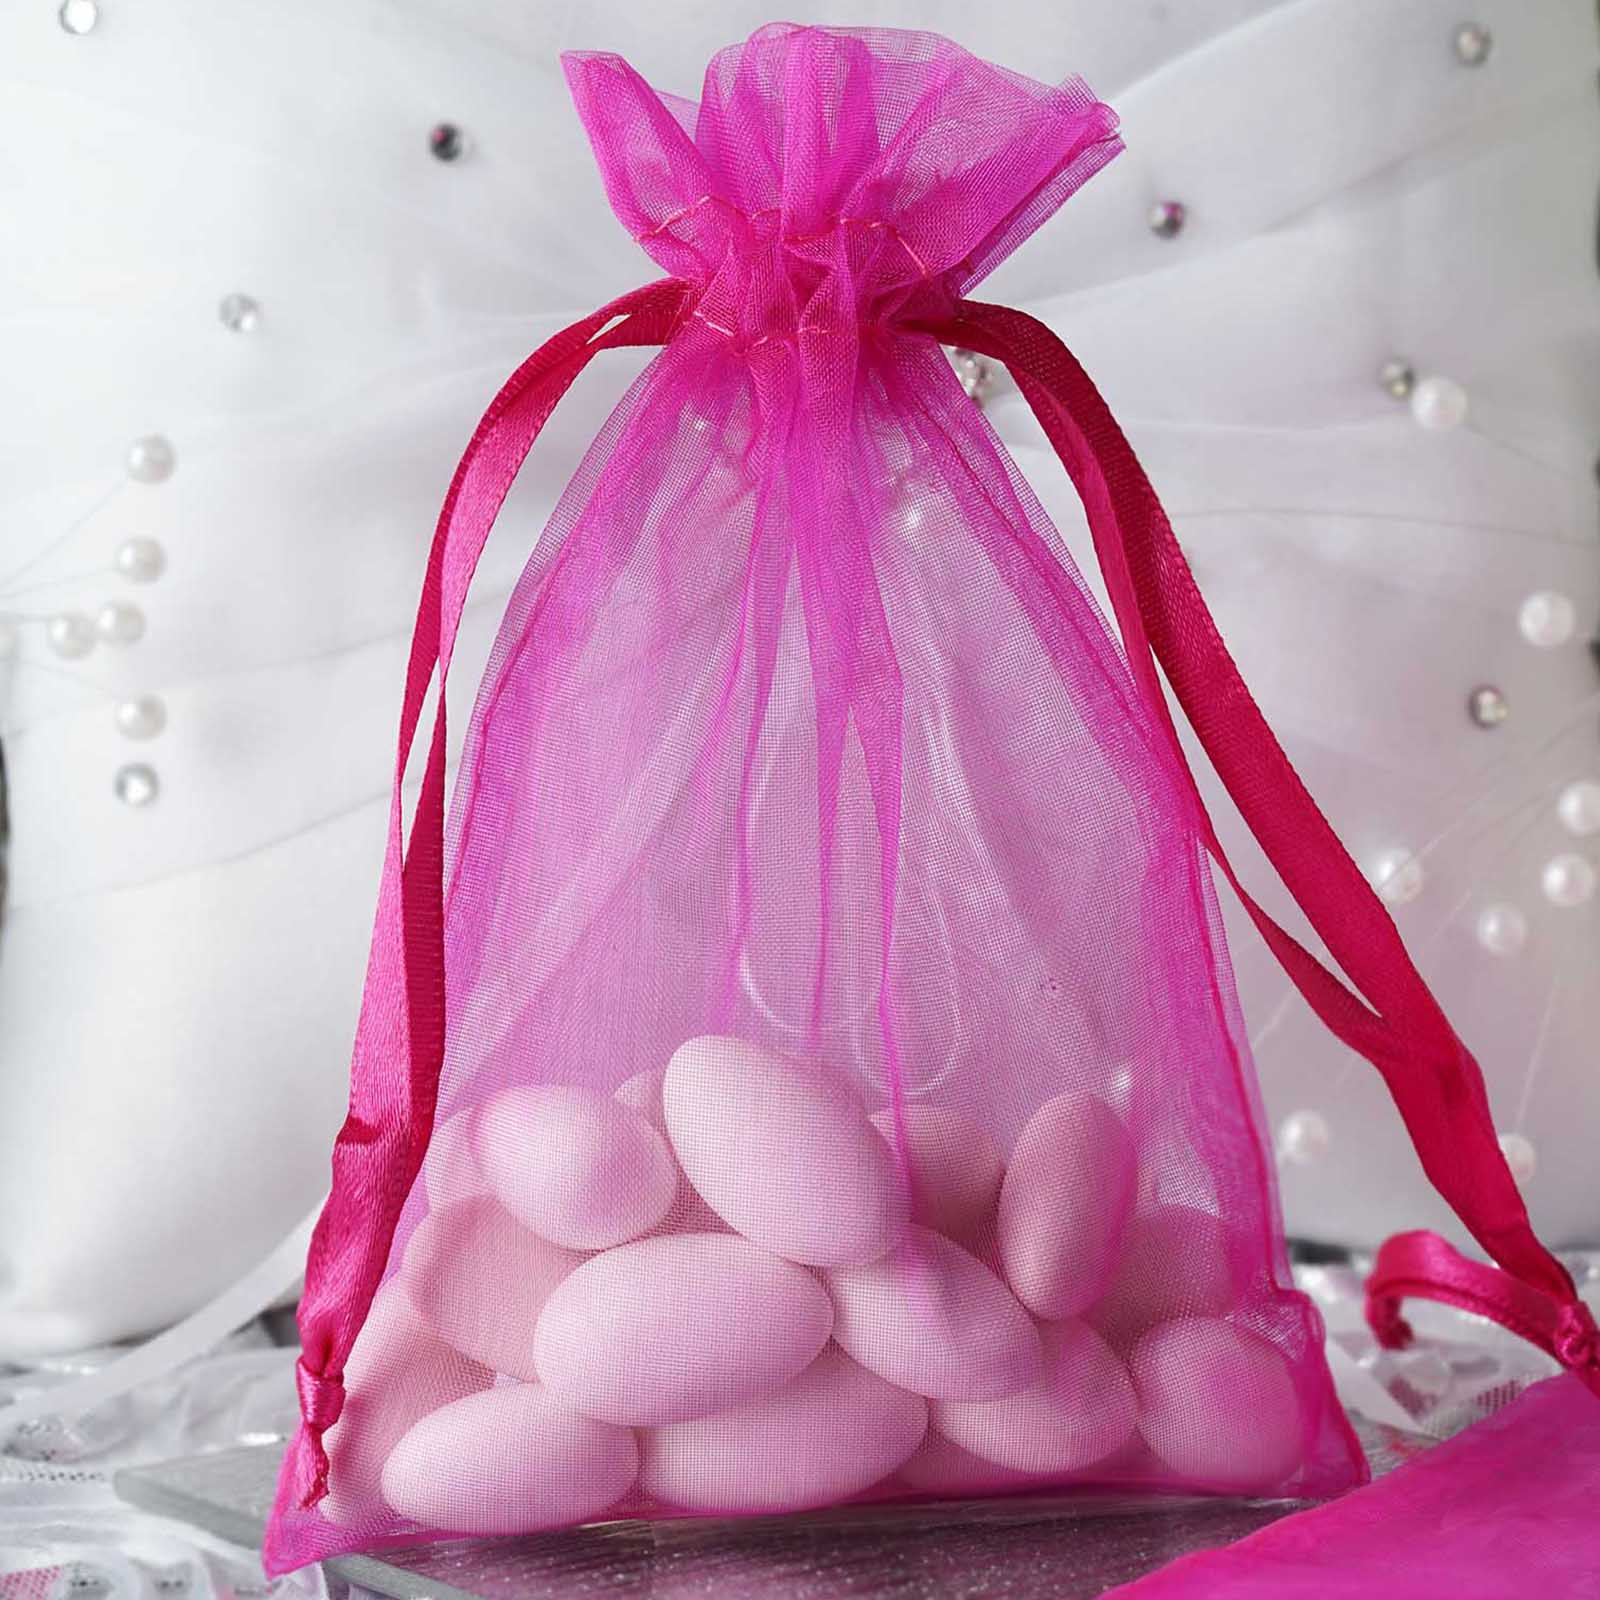 BalsaCircle 10 pcs 4x6 inch Organza Favor Bags - Wedding Party ...